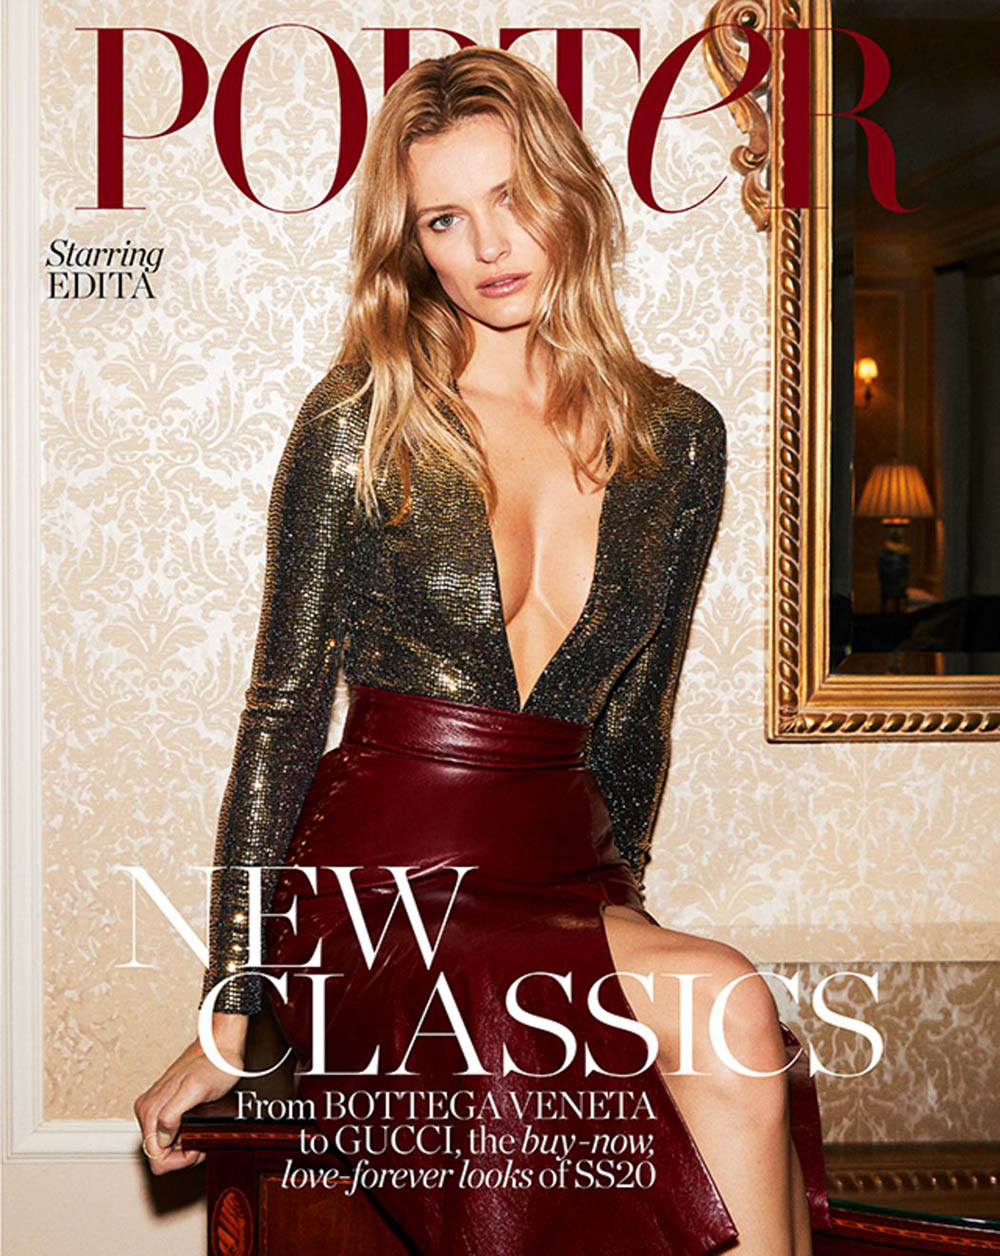 Edita Vilkeviciute covers Porter Magazine February 17th, 2020 by Carin Backoff